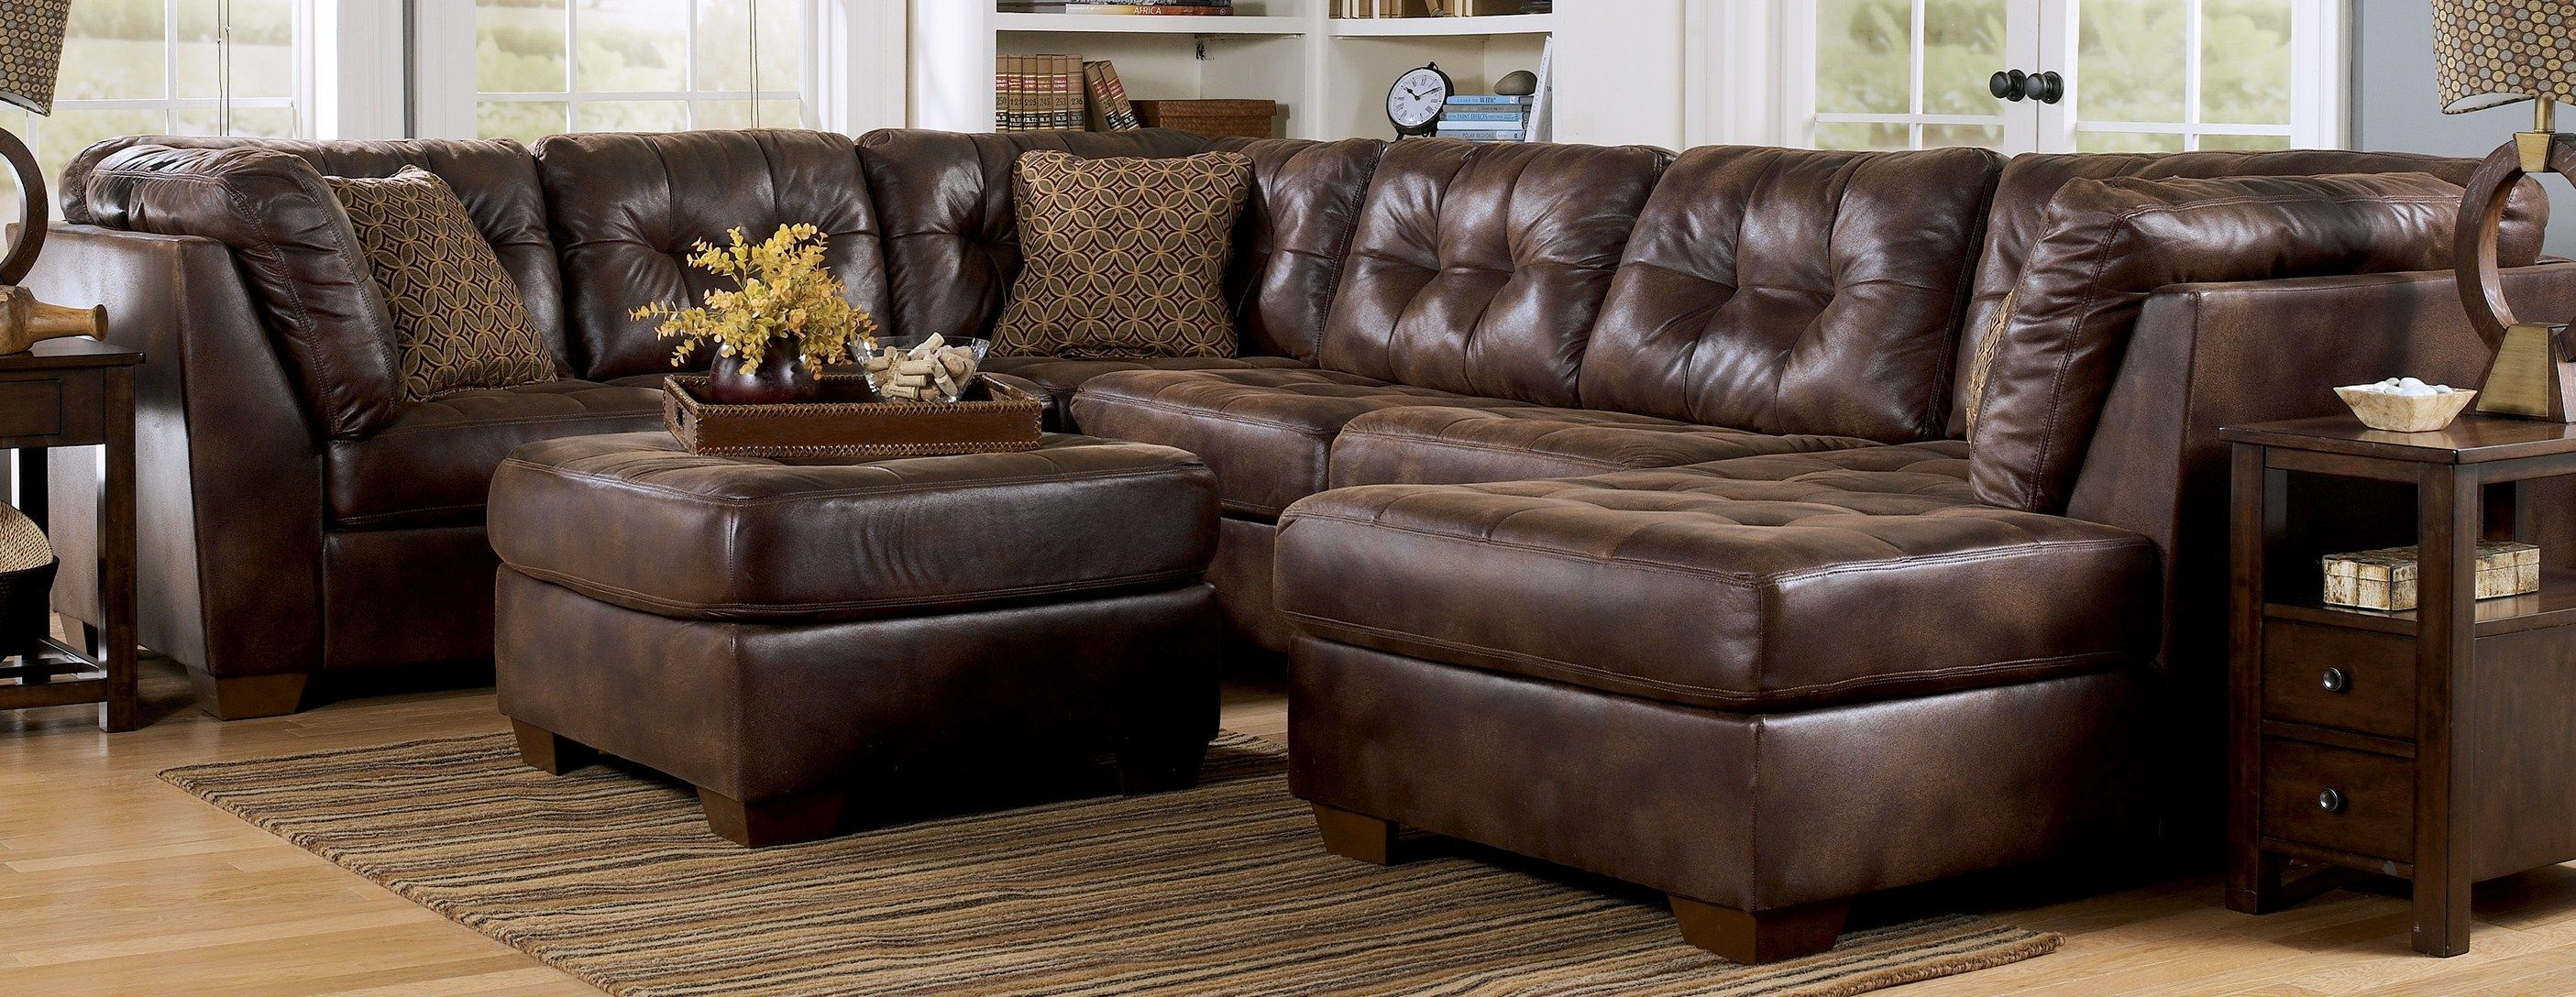 Sectional Sofa, Frontier Canyon, Signature Design by